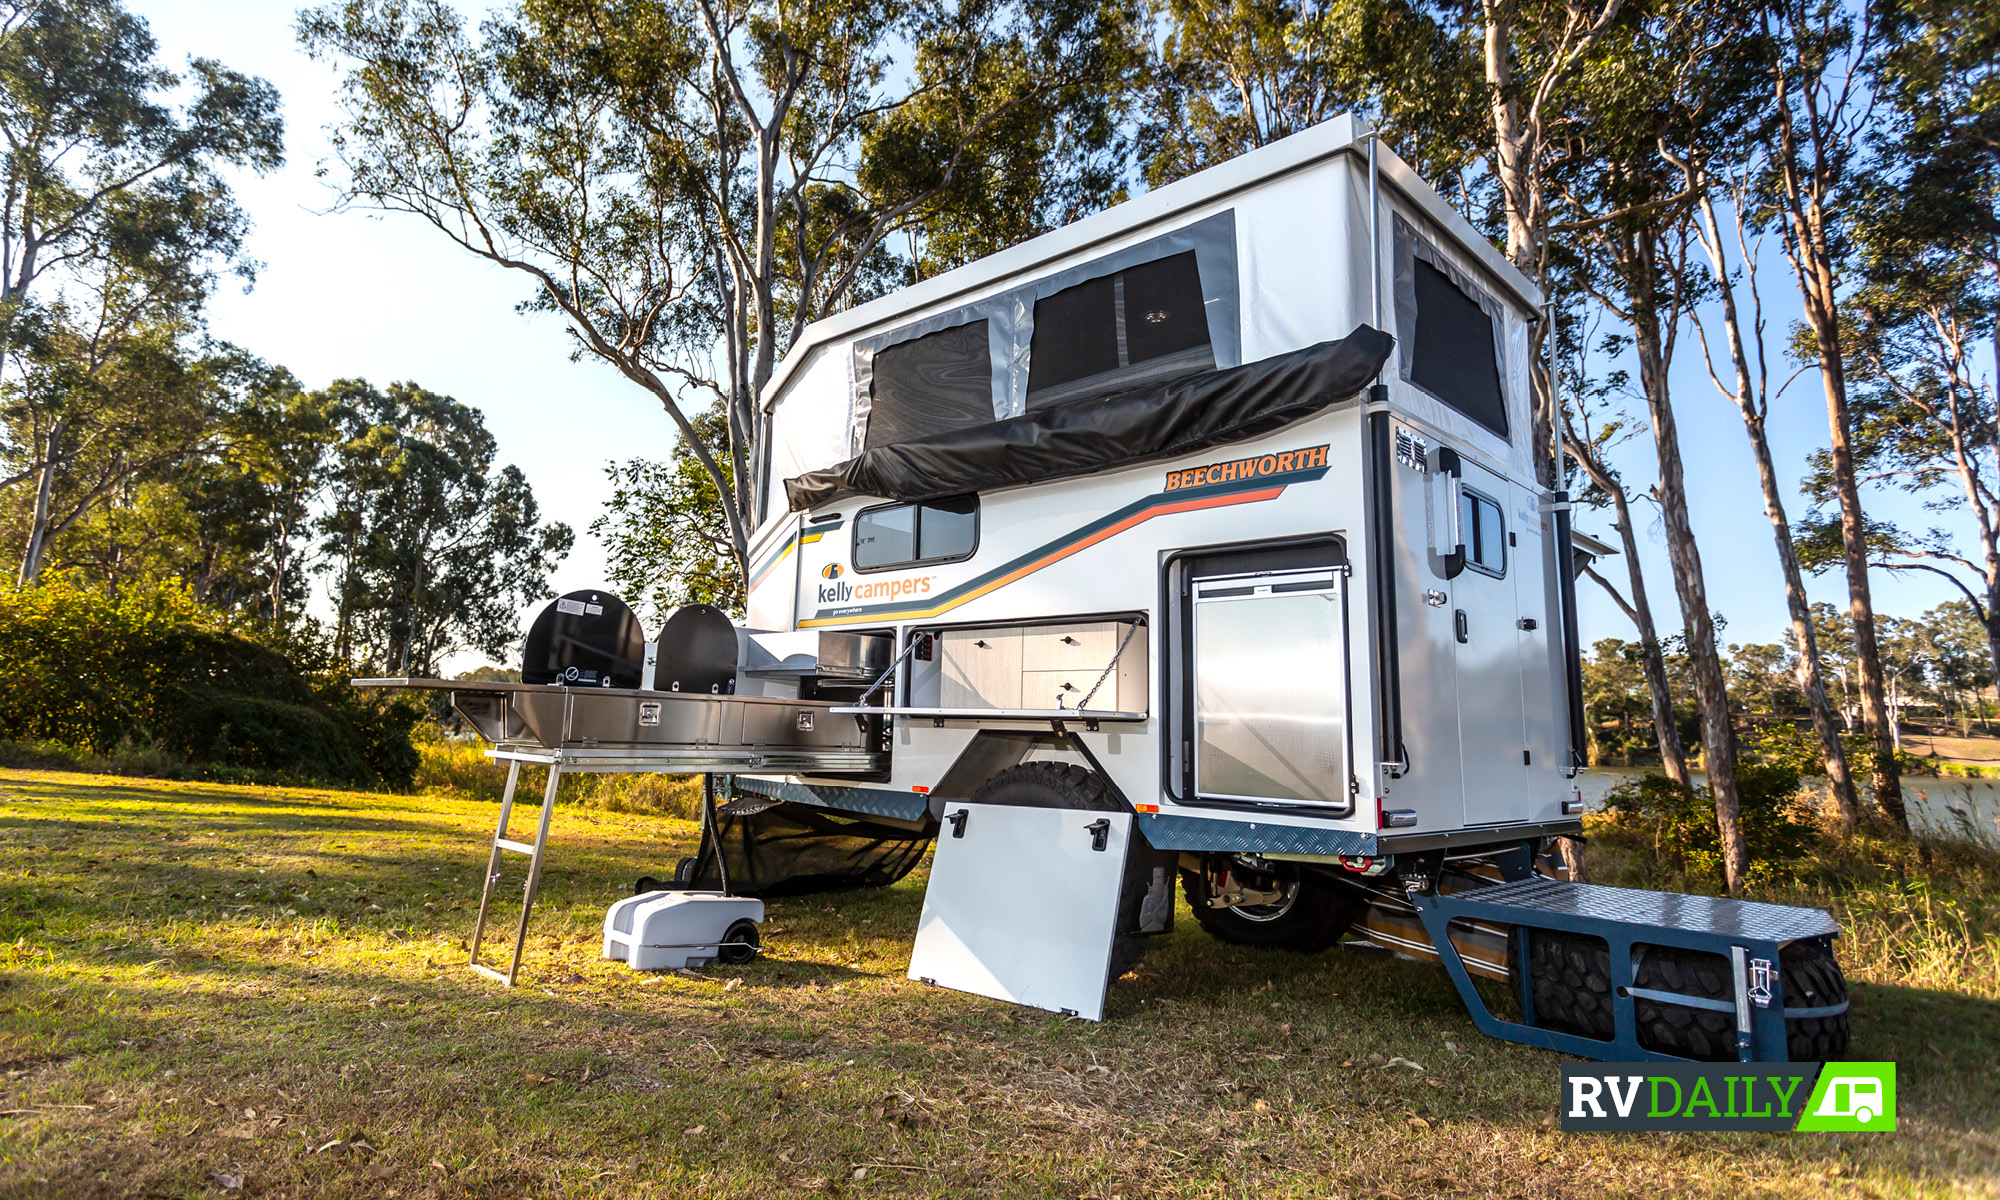 The camper that would have kept Ned safe…